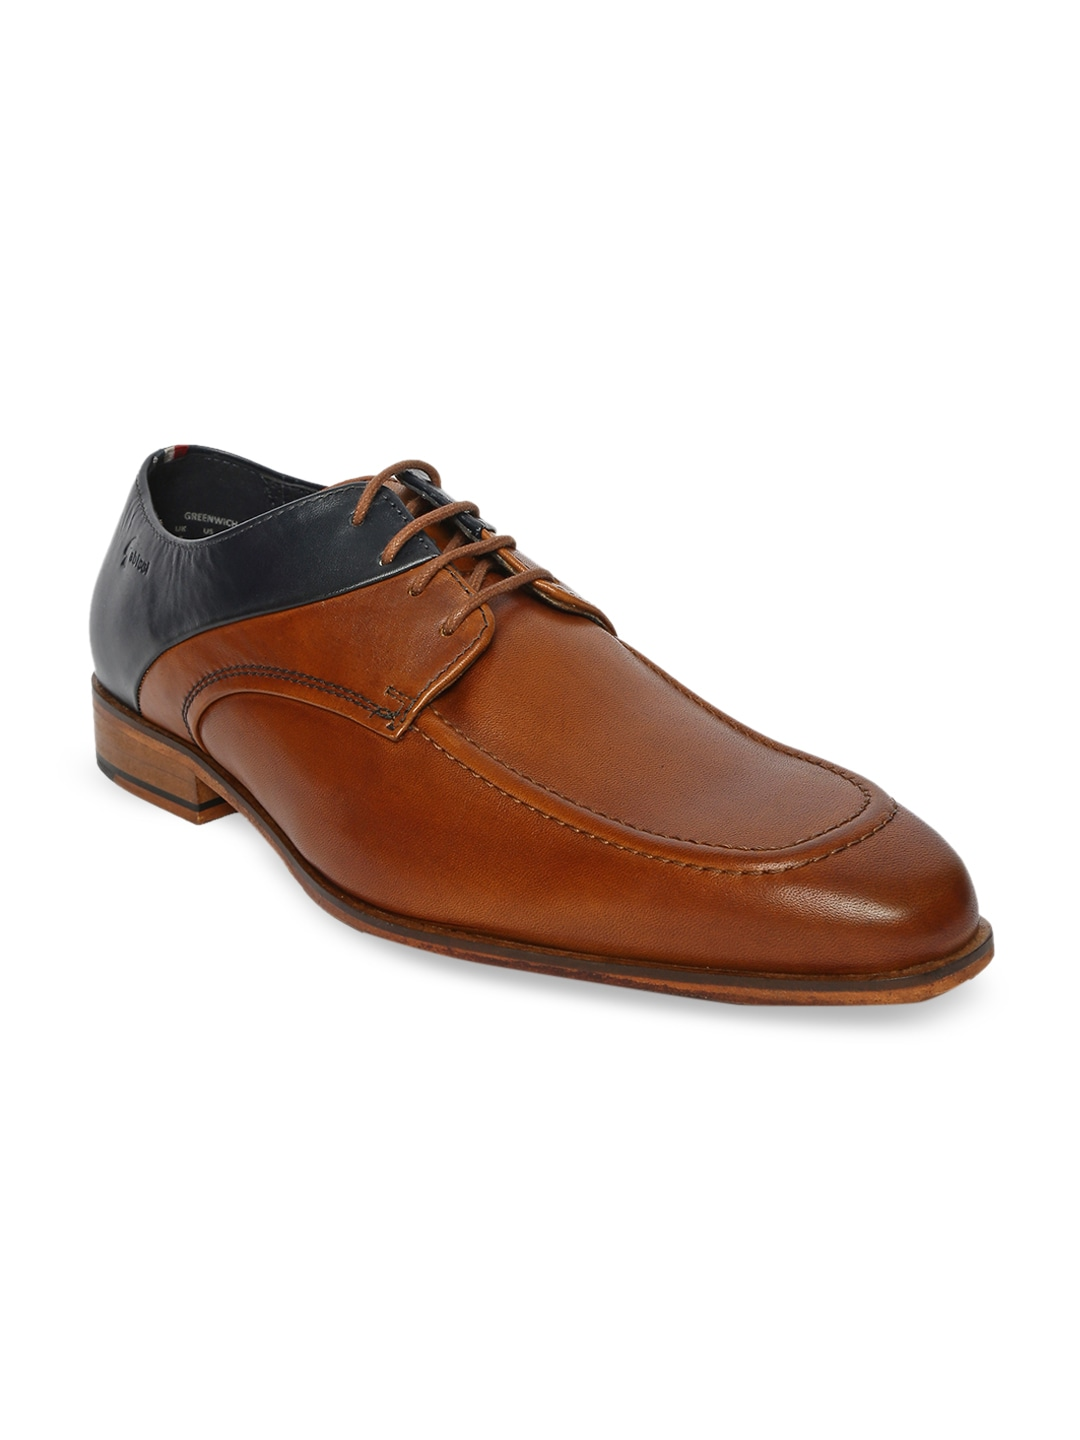 Tan Brown & Black Colourblocked Leather Formal Derbys